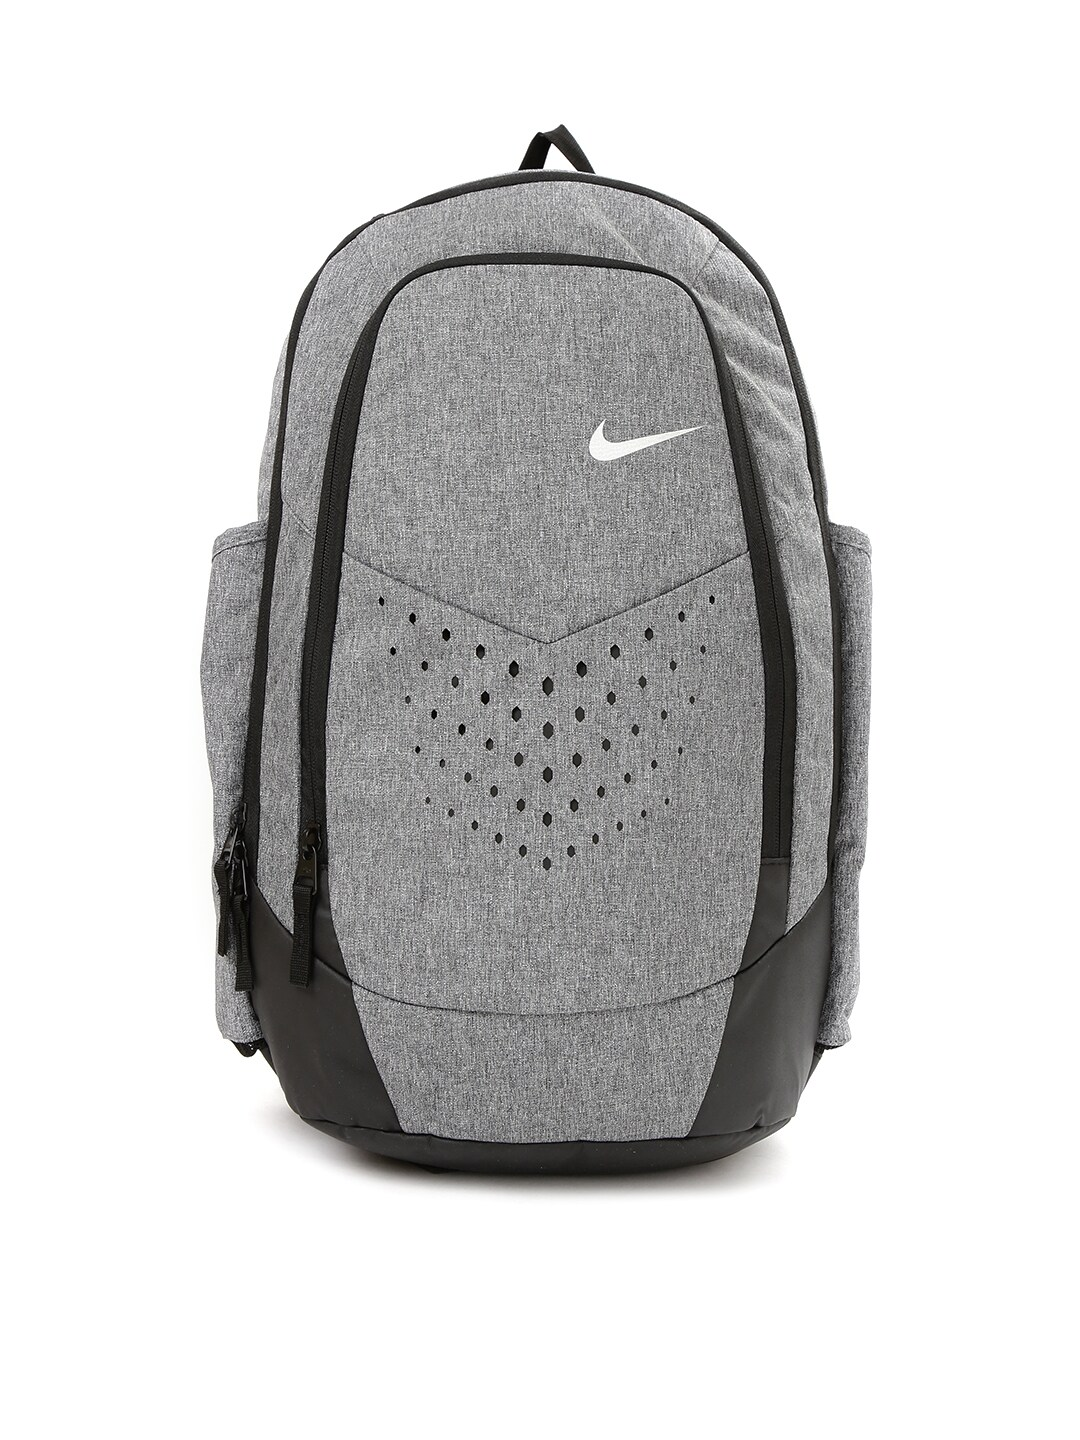 Nike ba5245-021 Unisex Grey Vapor Energy Backpack With Cut Out Detail-  Price in India 3ad9f668c896